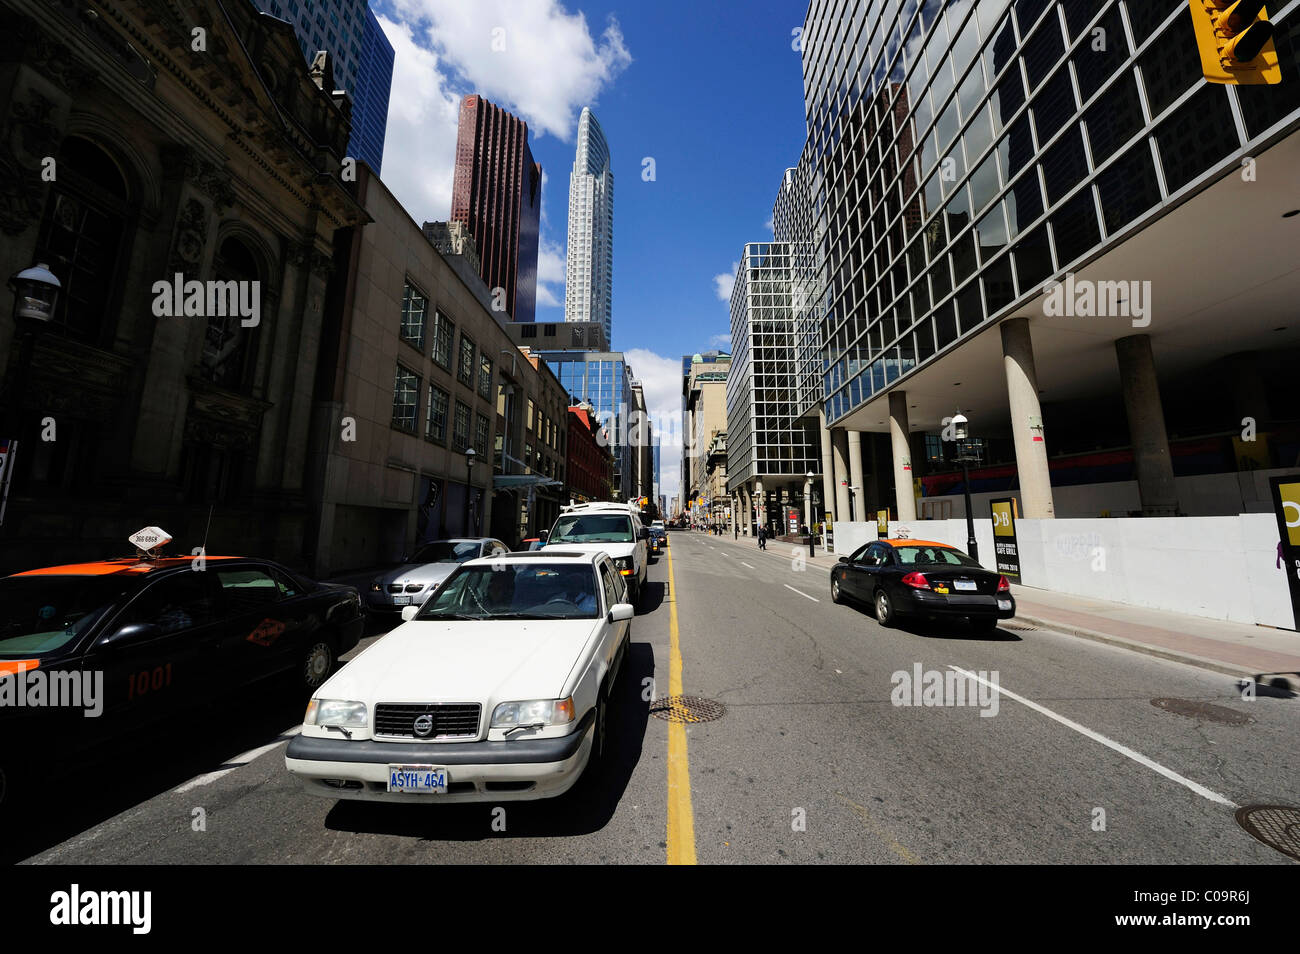 Yonge Street, the busiest street in downtown Toronto, Ontario, Canada - Stock Image